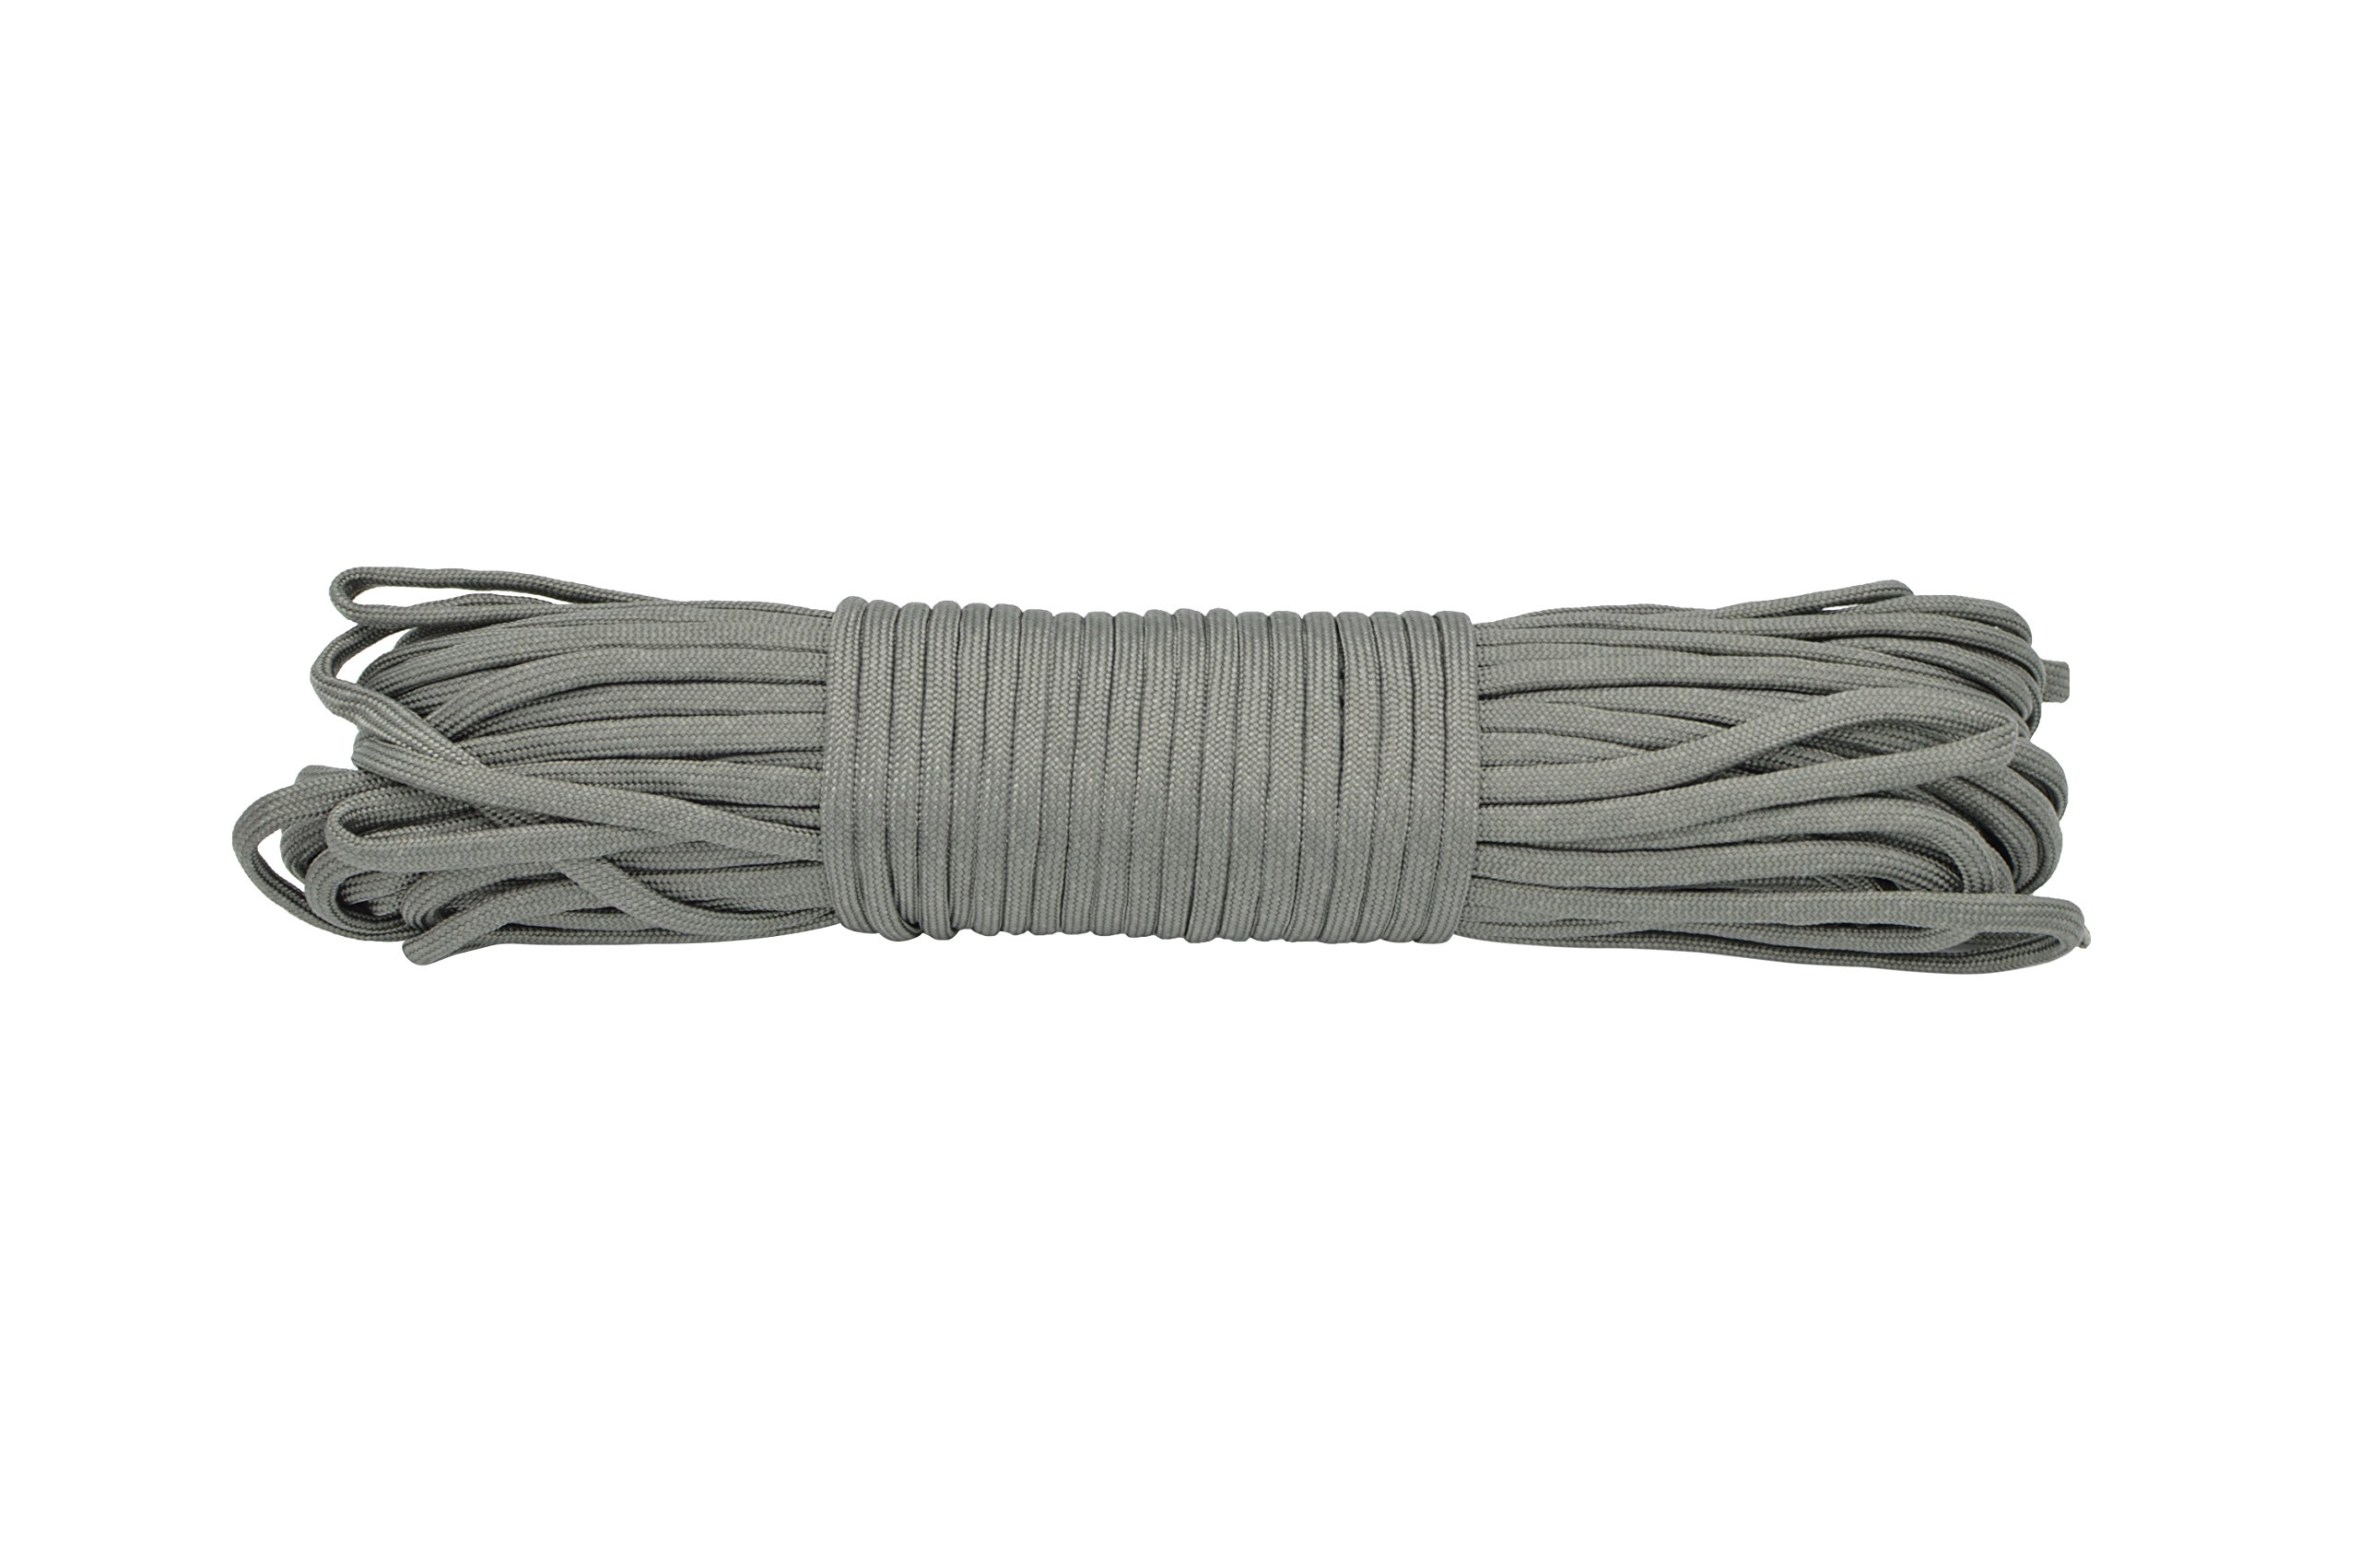 Paracord Rope 550 Type III Paracord - Parachute Cord - 550lb Tensile Strength - 100% Nylon - Made In The USA (Foliage Green, 50 Feet)